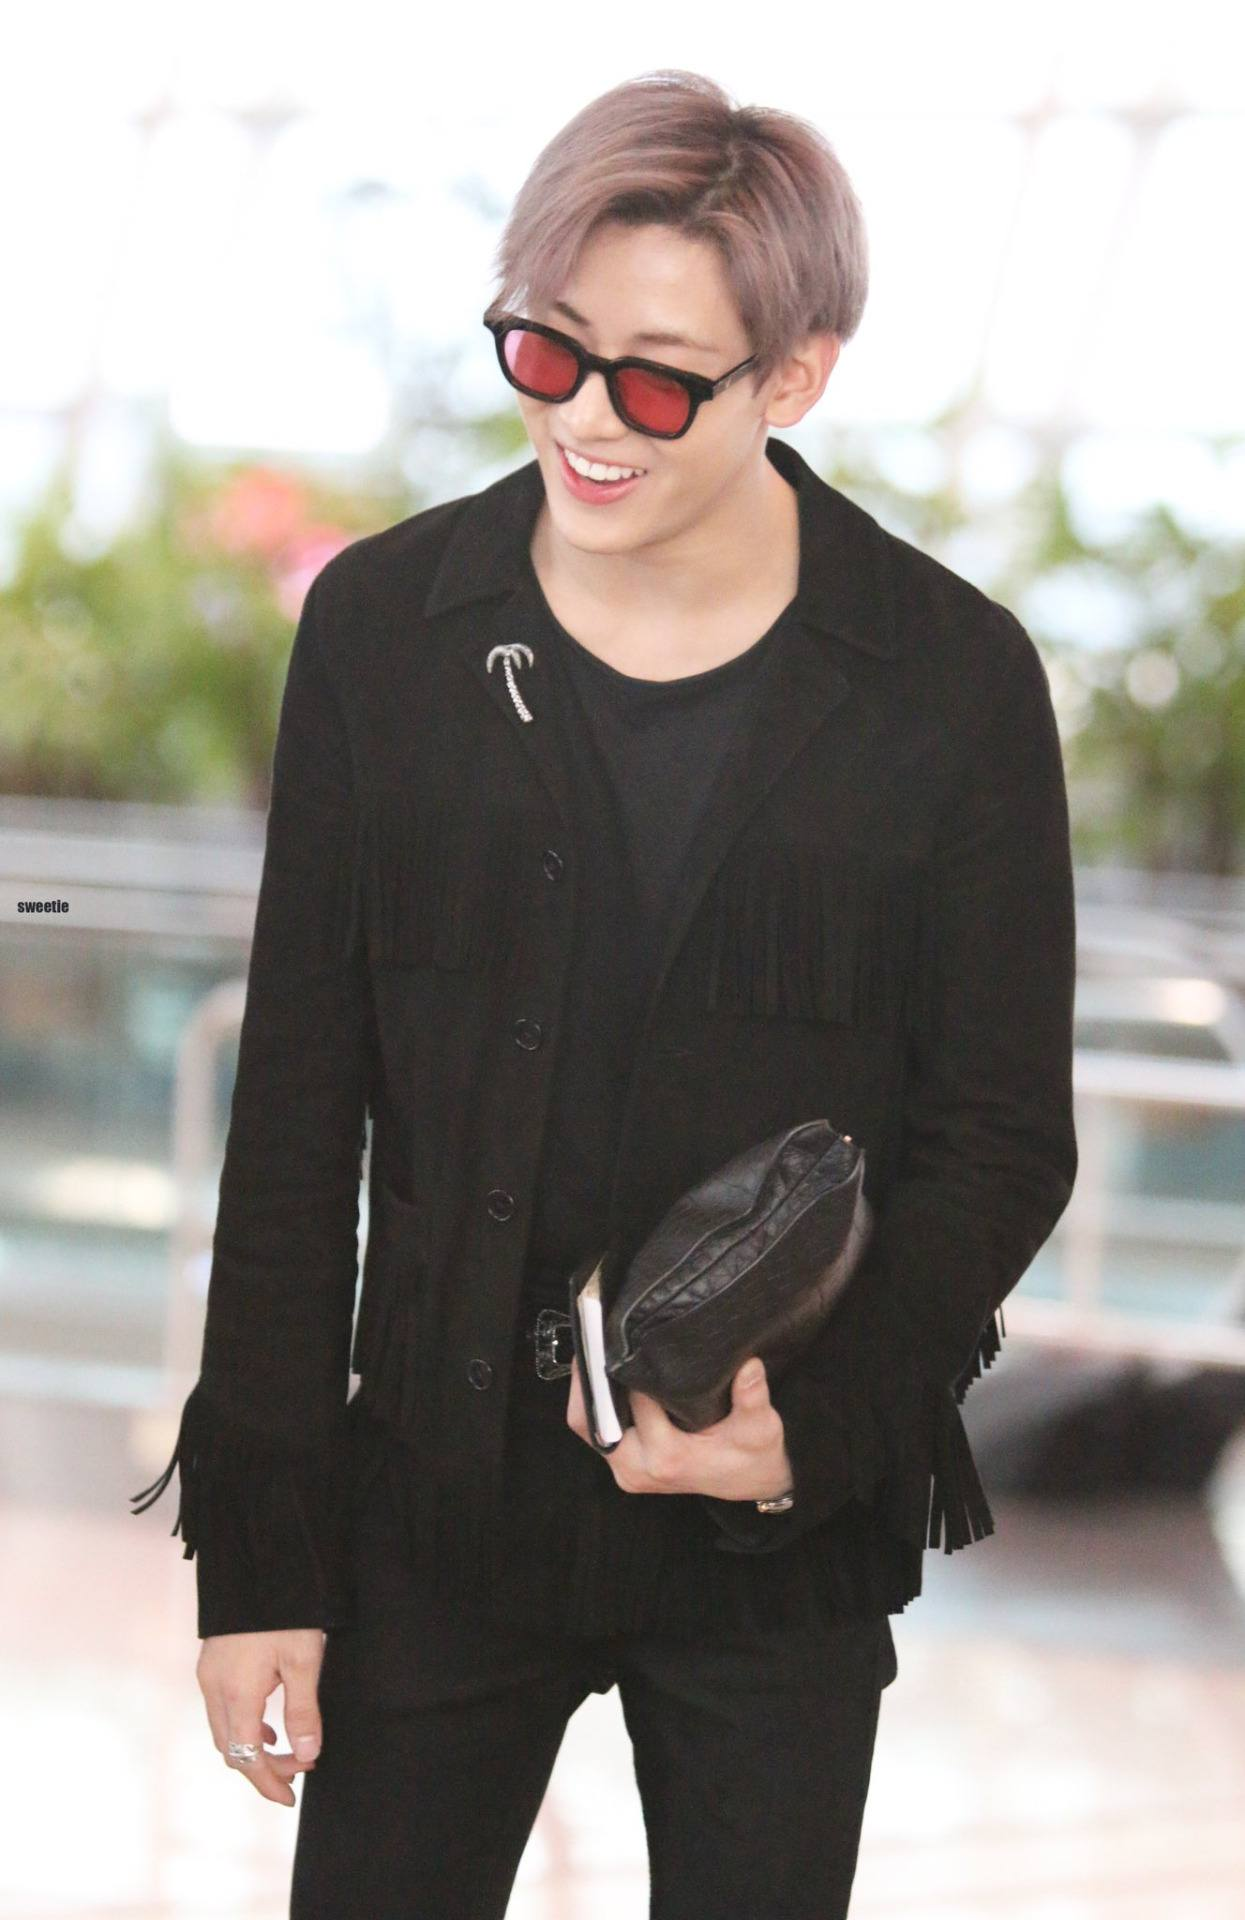 BamBam's airport fashion always keeps us on our toes / Source: sweetie